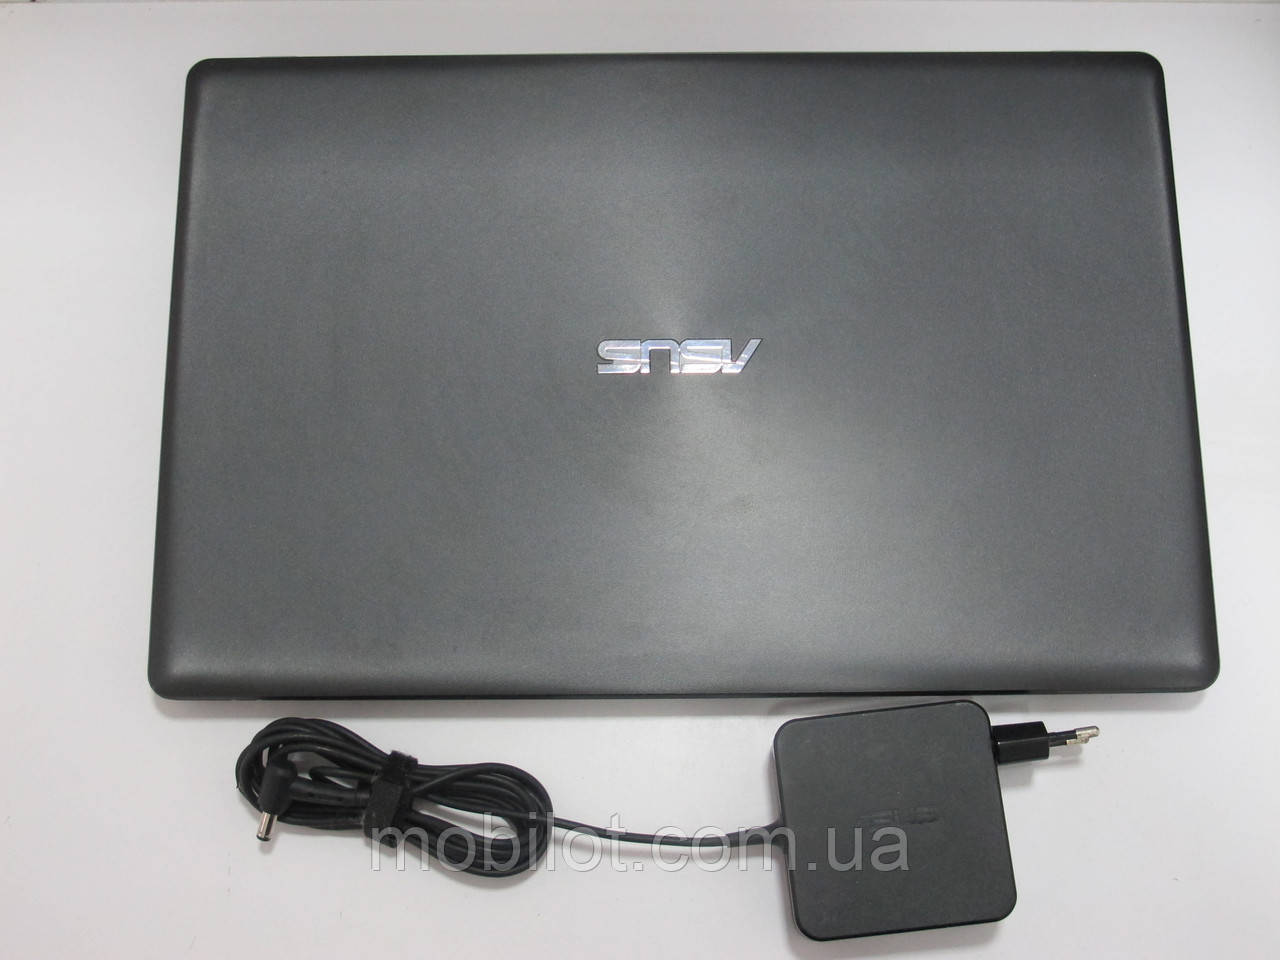 Ноутбук Asus X552EP (X552EP-XX061D) (NR-6731)